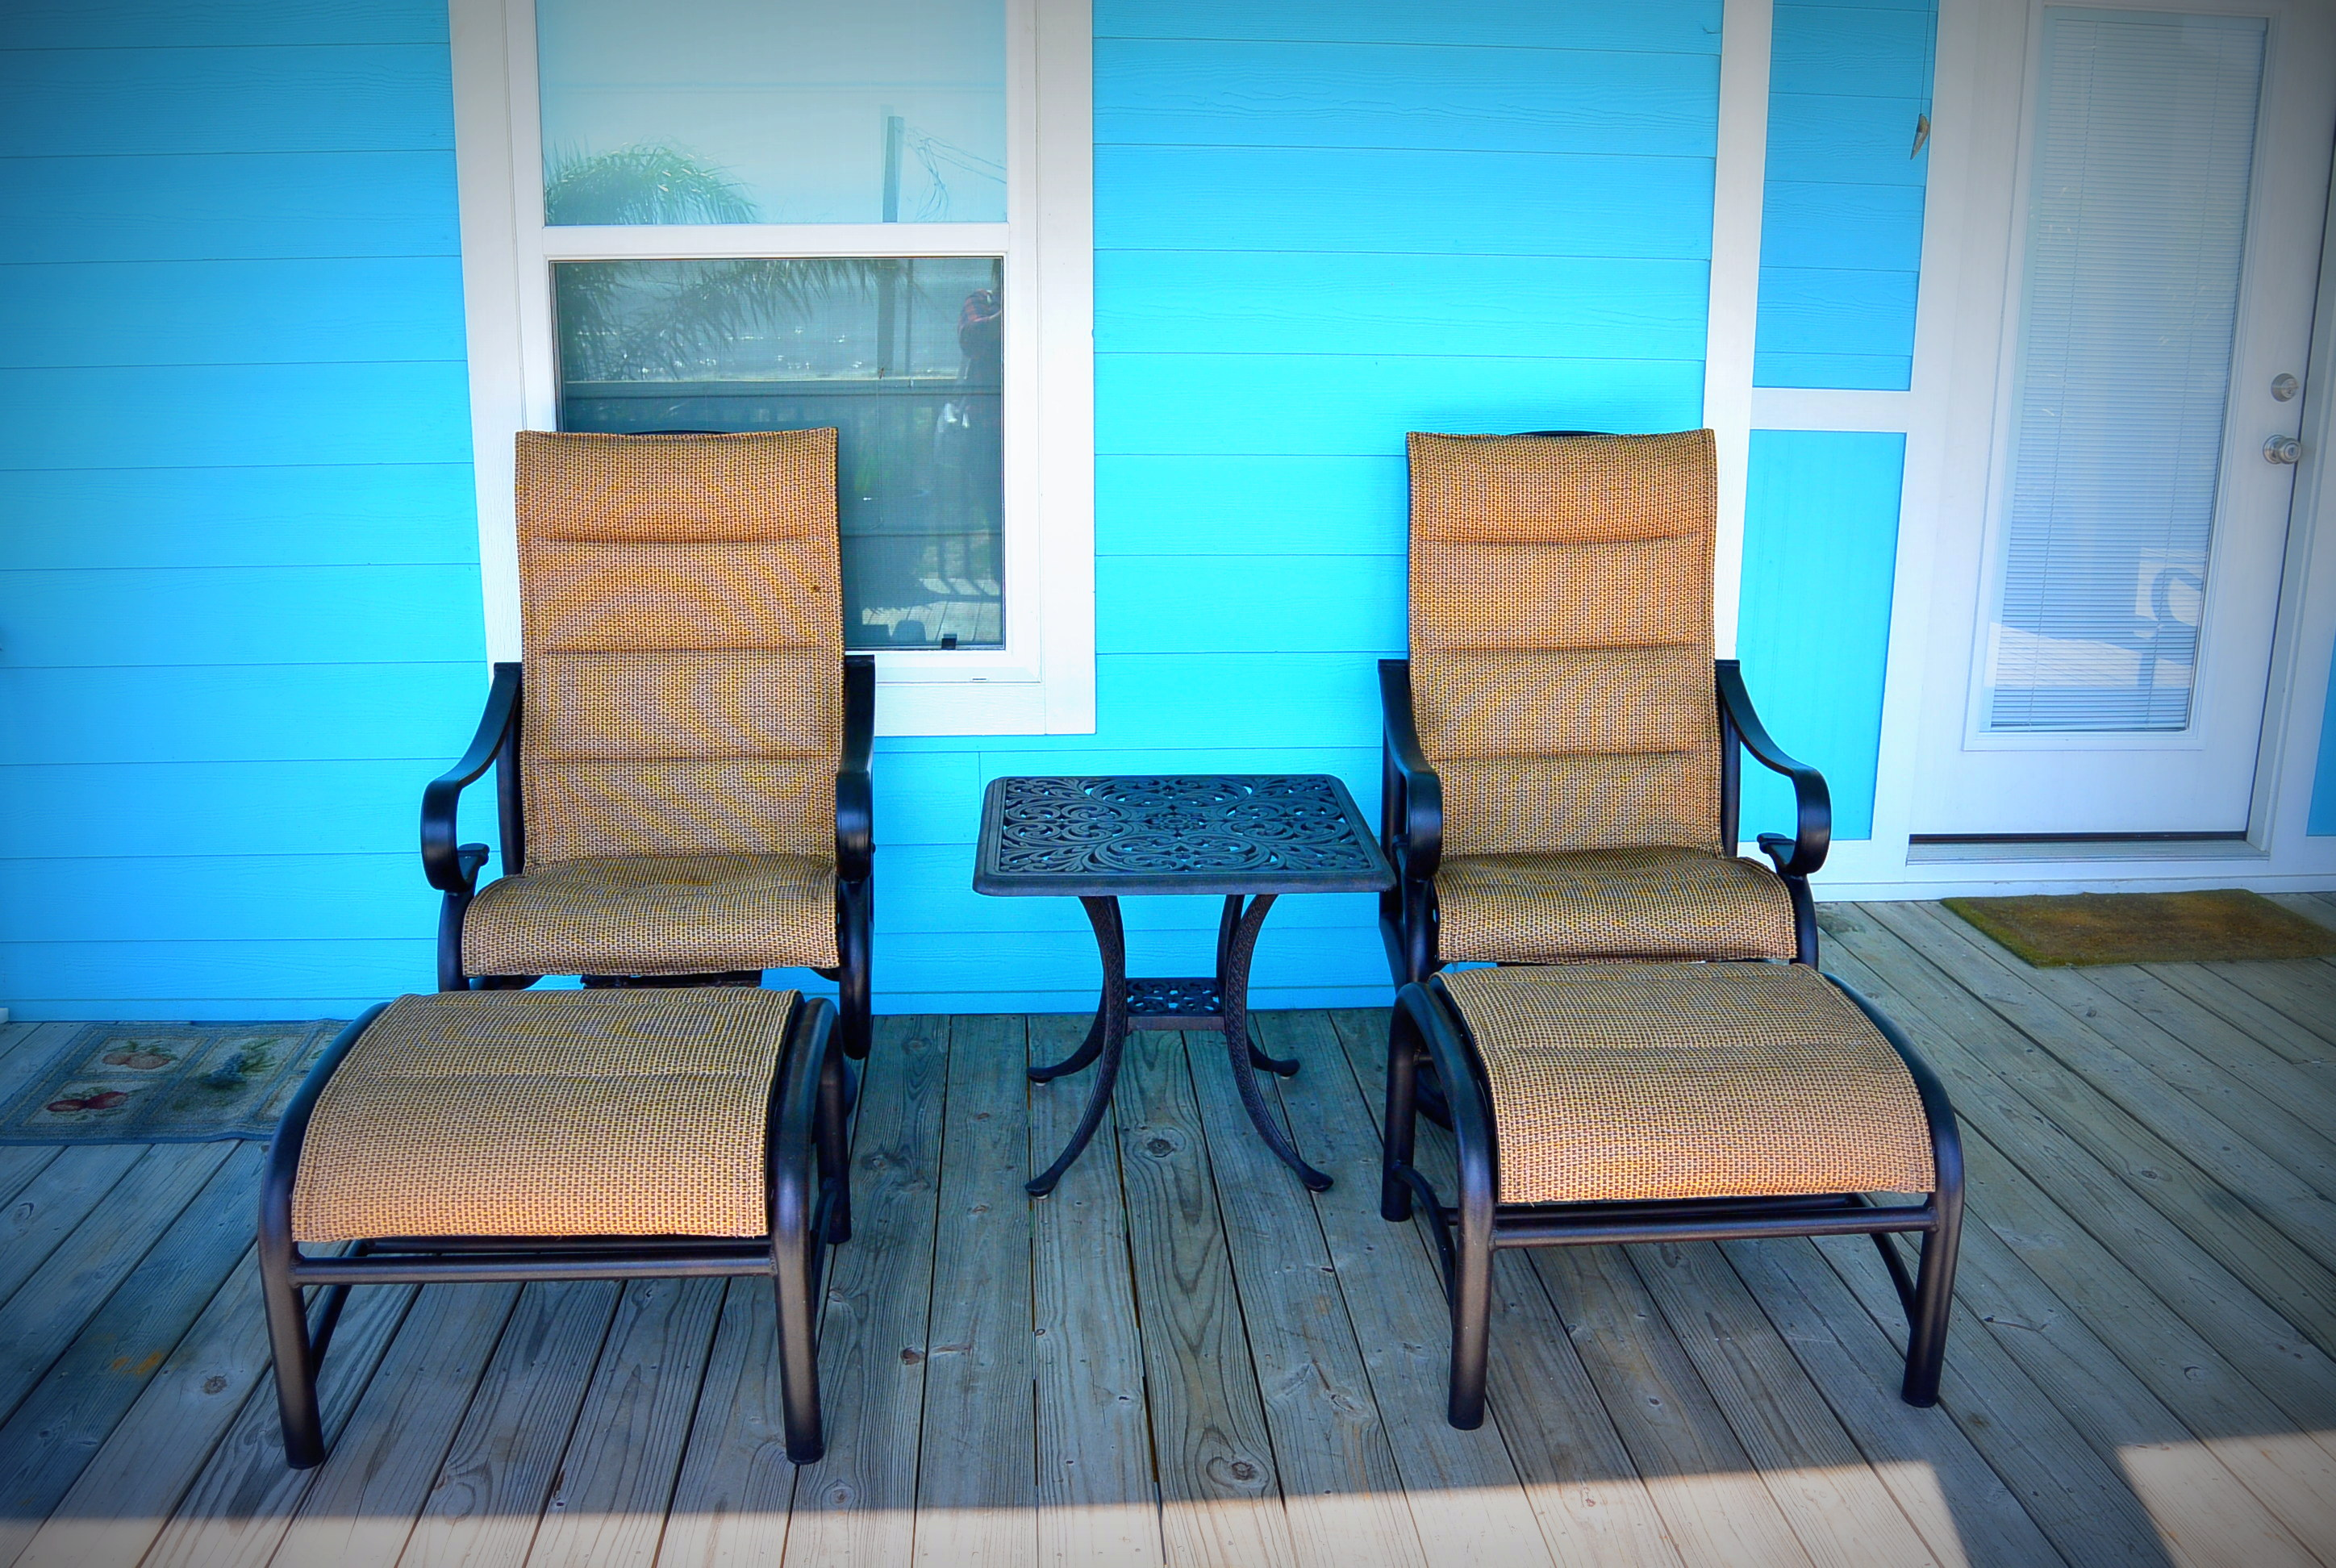 A Lil' Peace of Heaven deck chairs